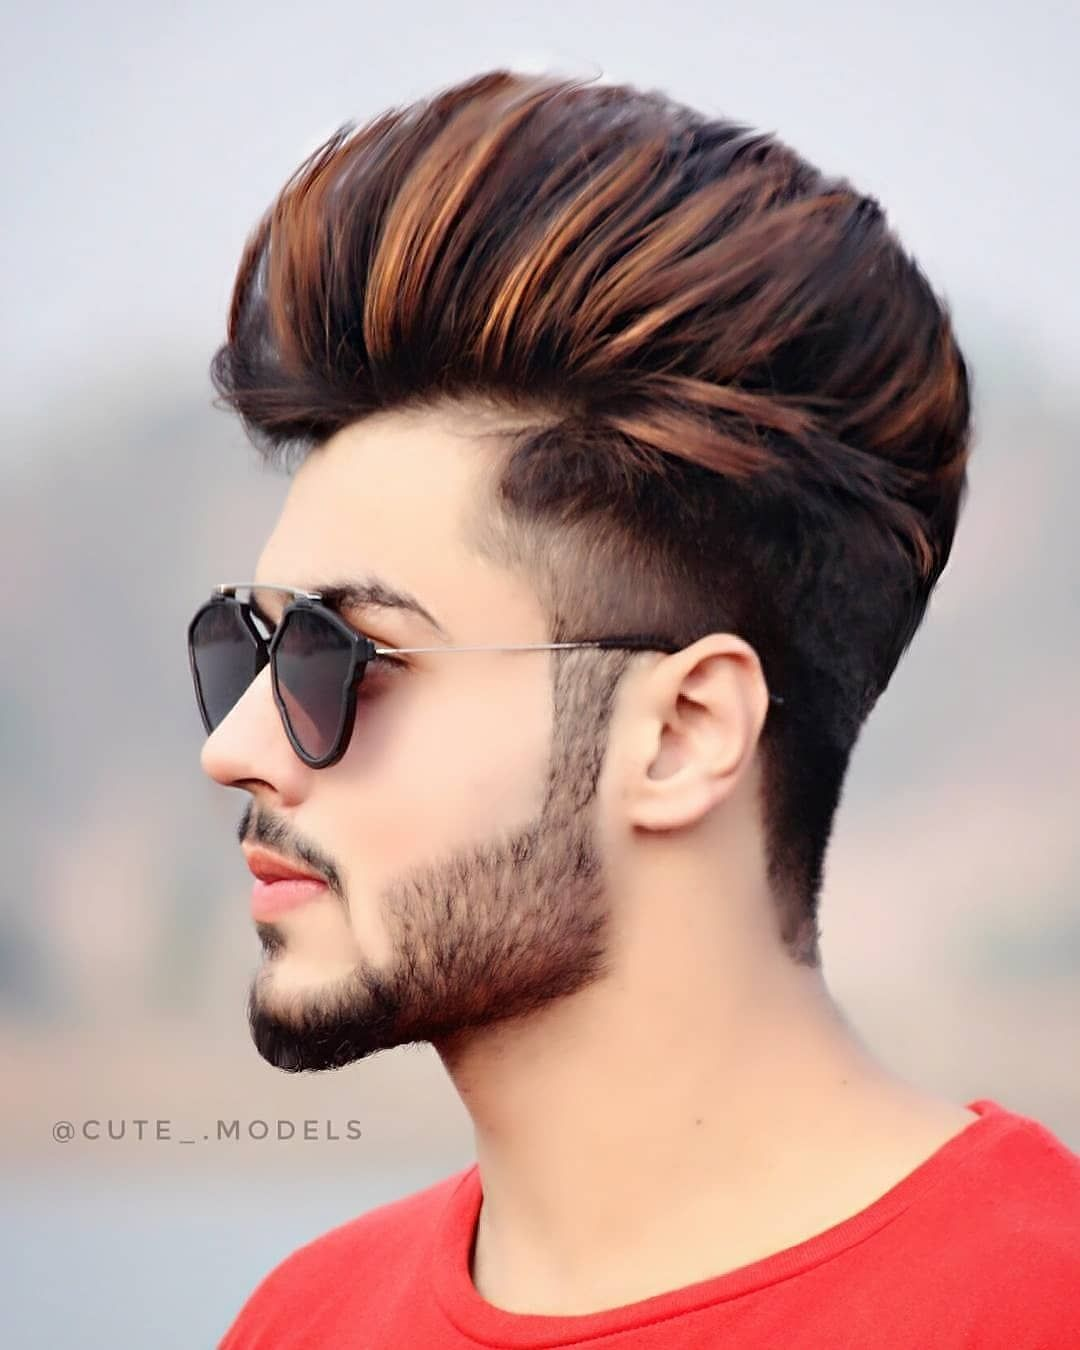 Simple Hair Style Boy 2015 Ford Mustang Simple Hair Style